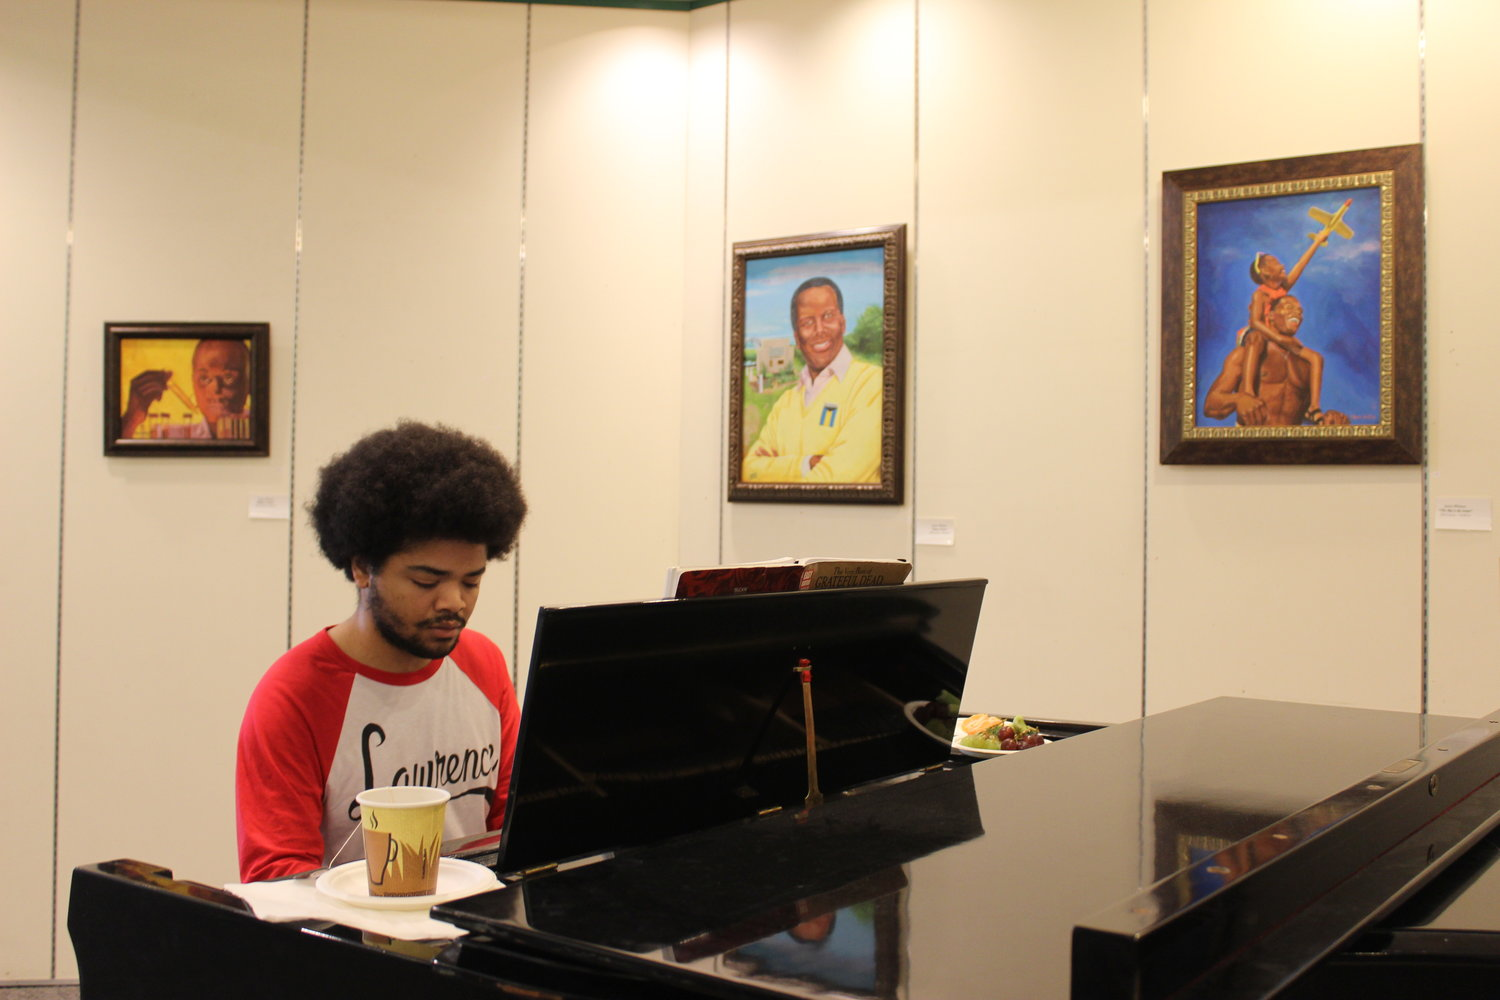 Richard Arriaga played piano at an opening reception for Whitten's exhibit last Saturday.